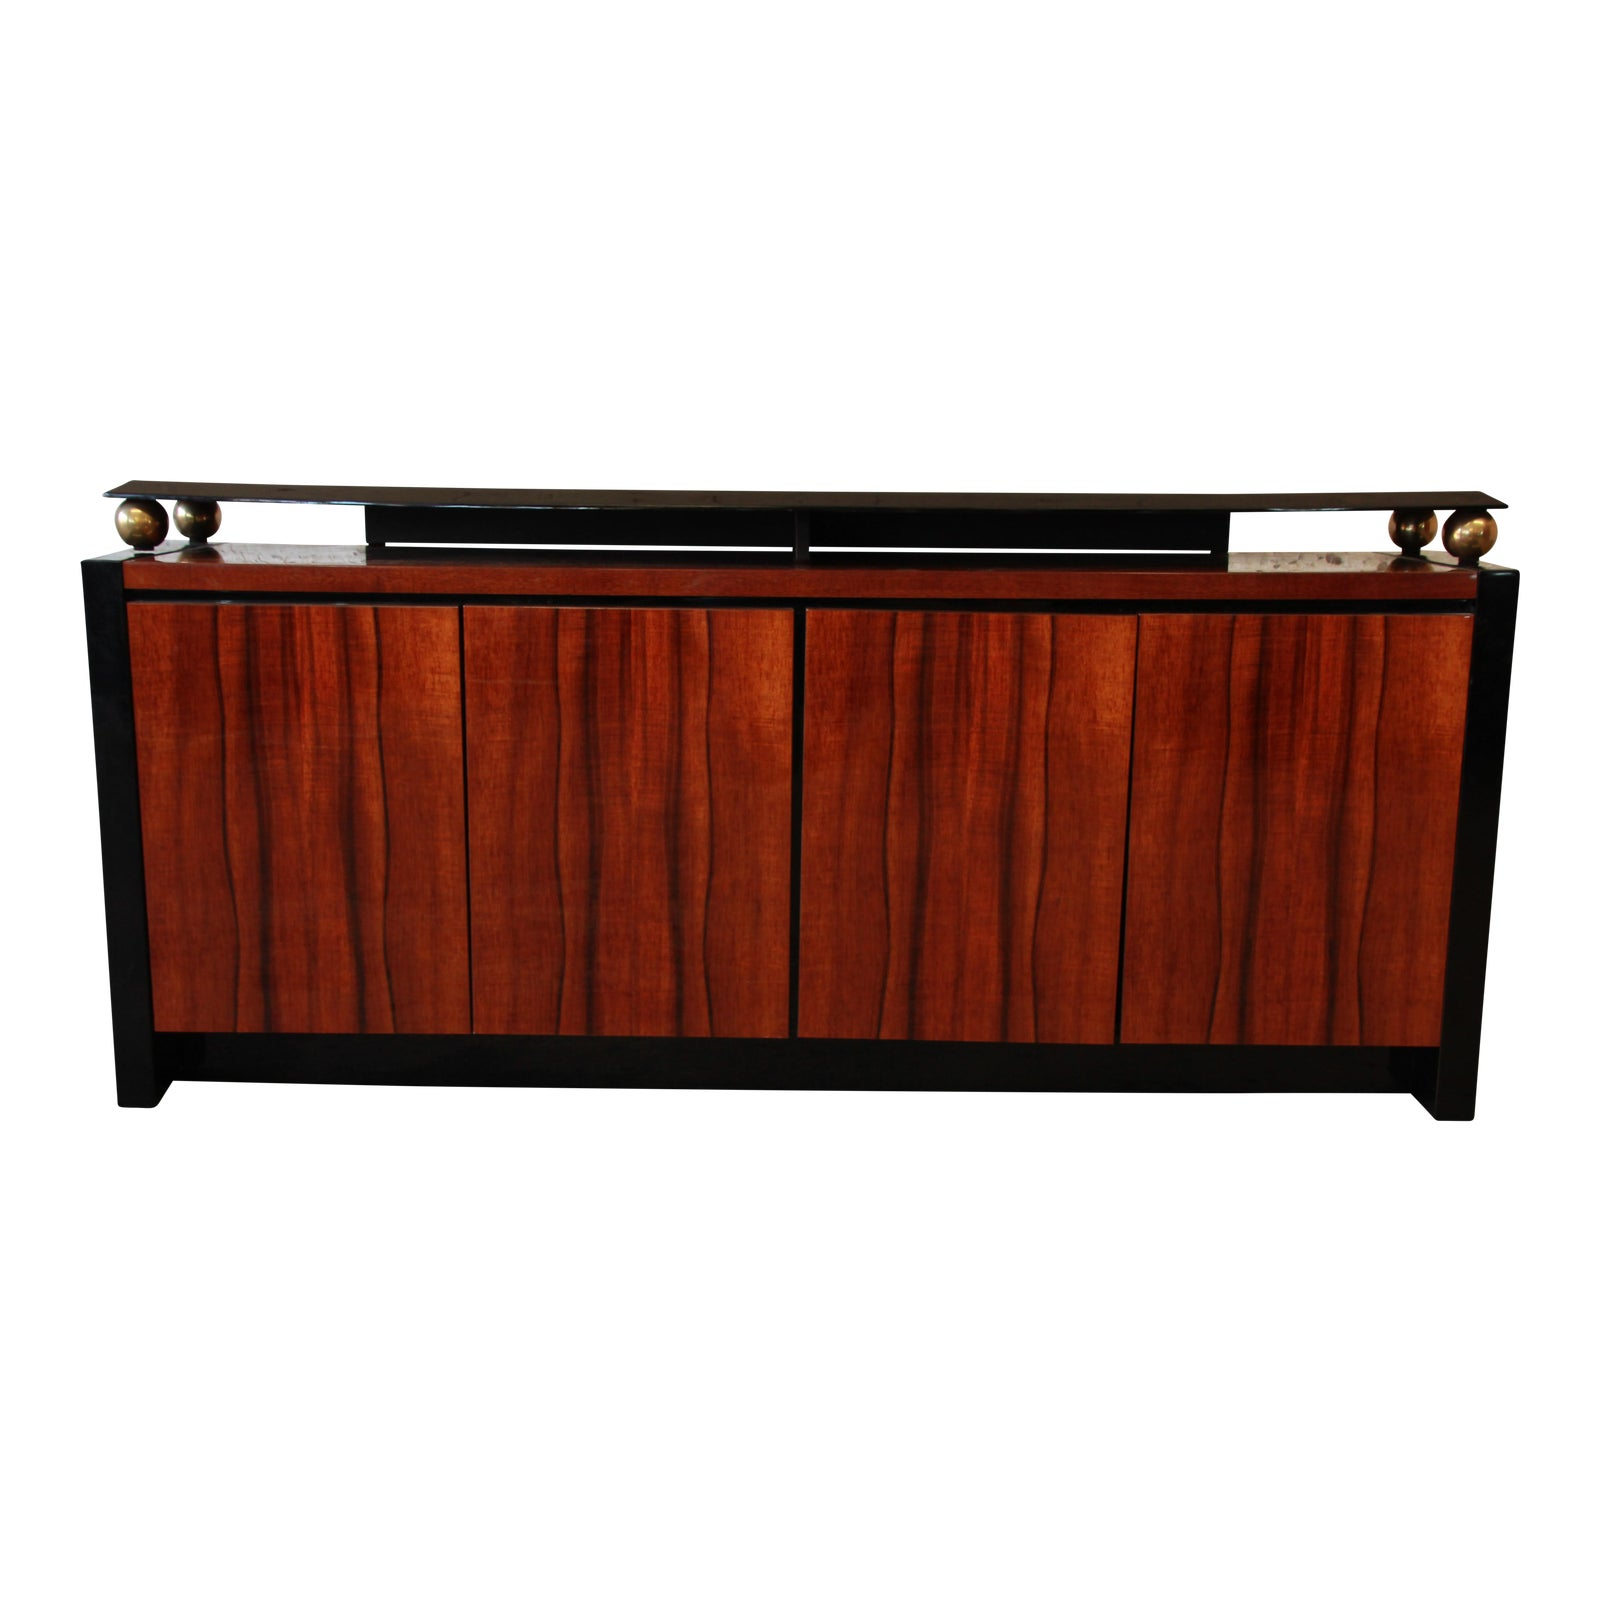 Koa Wood Kitchen Cabinets: Henredon Elan Collection Black Lacquer & Koa Wood Credenza